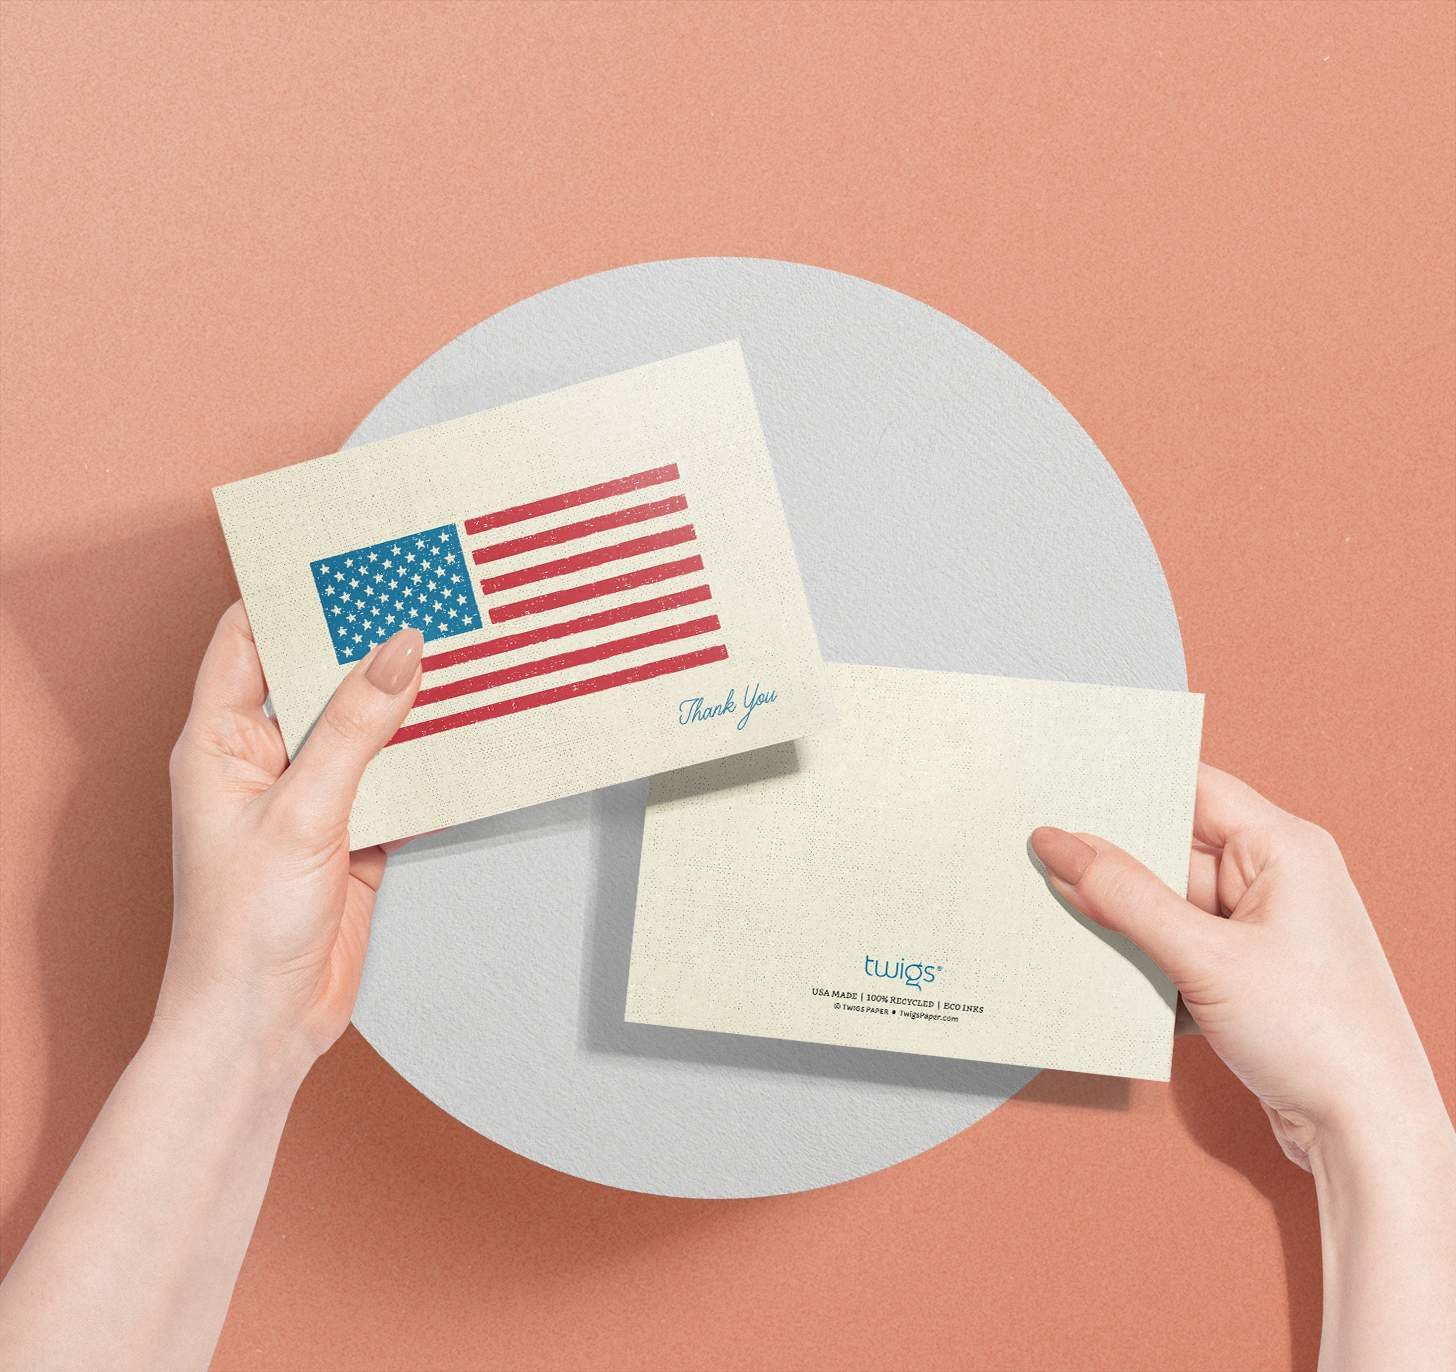 Woman's hands holding two American flag thank you cards showing the front and back